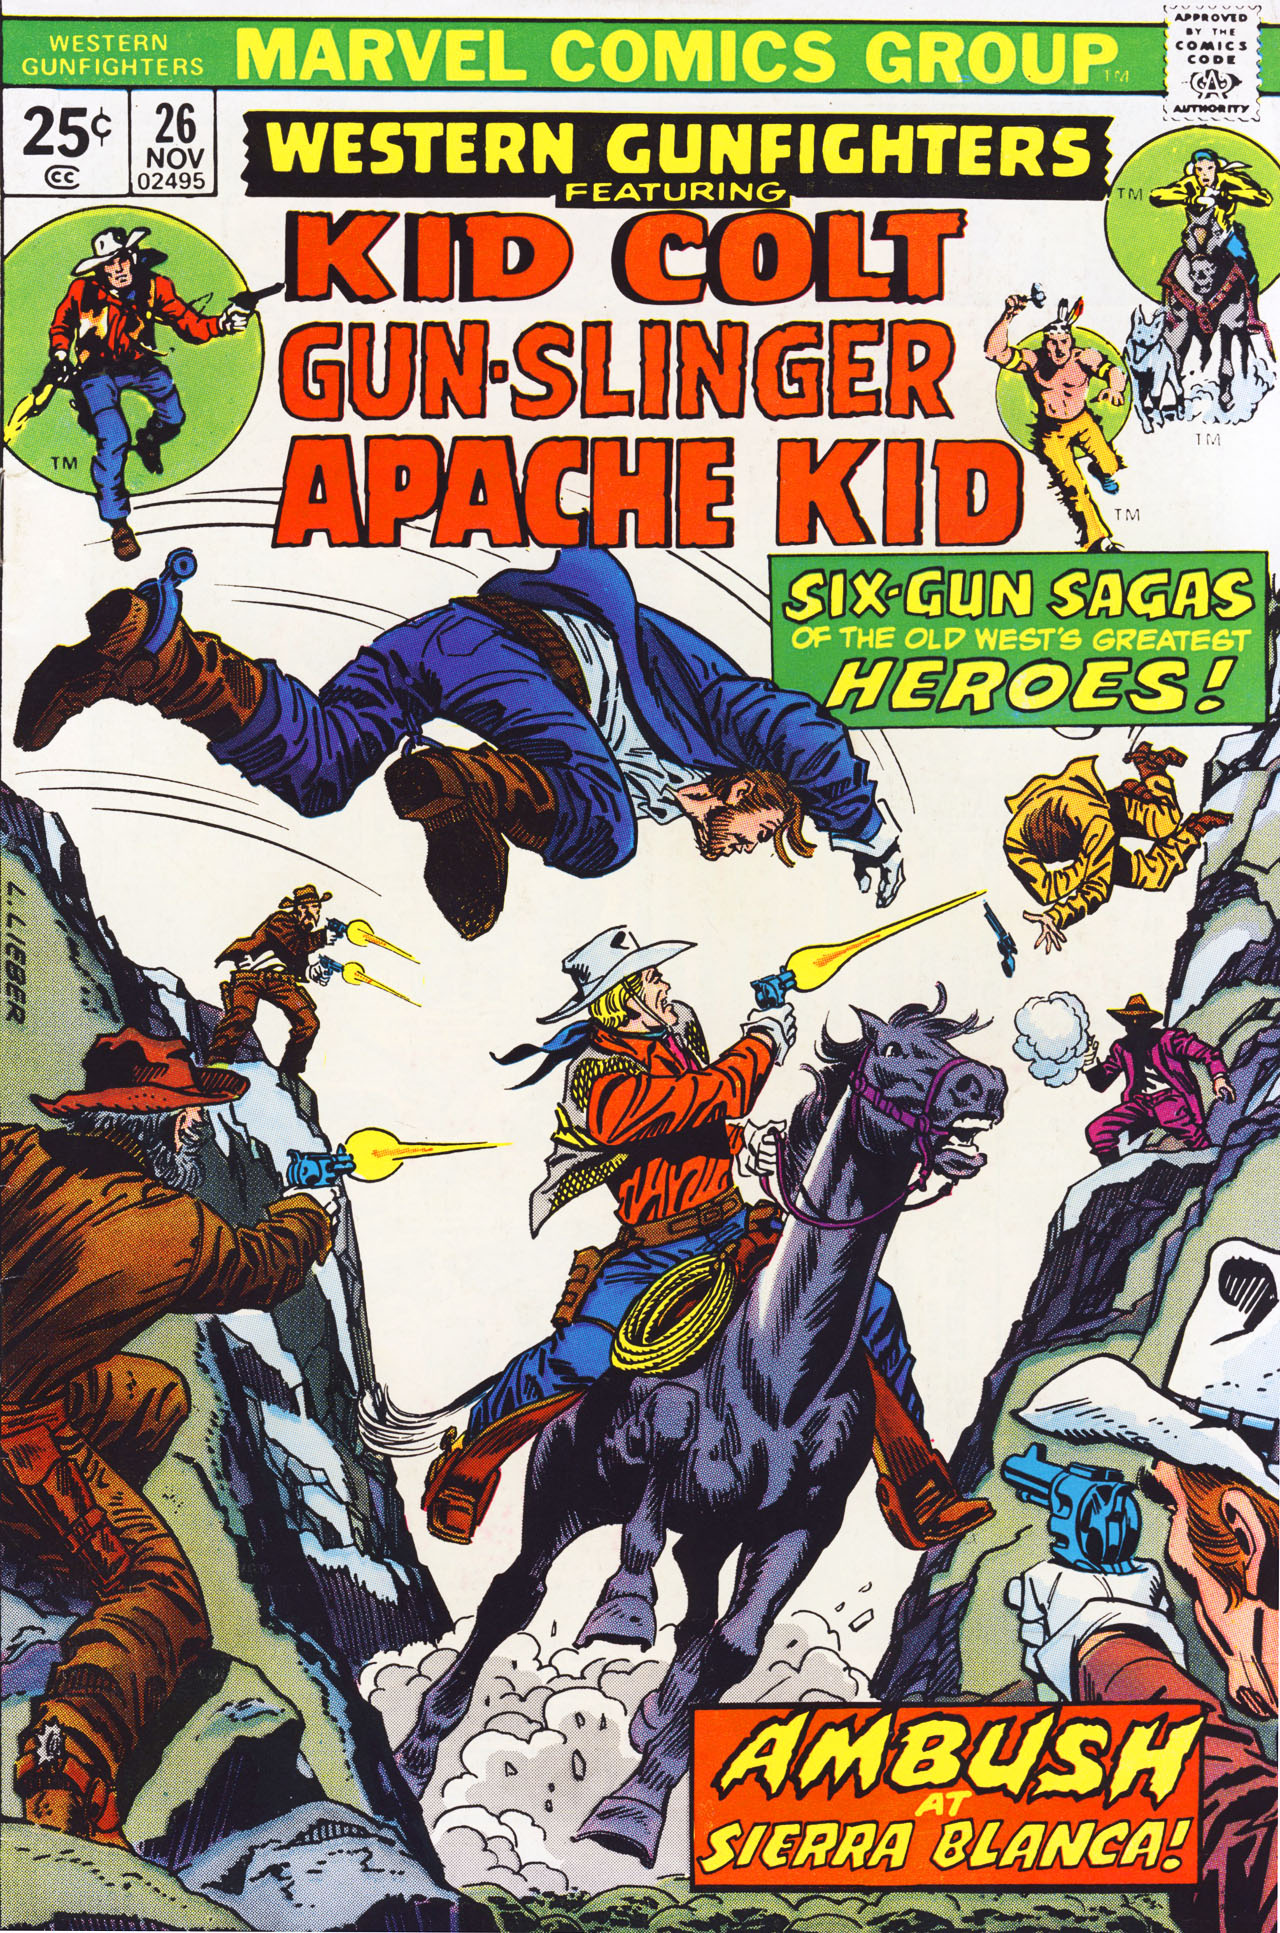 Western Gunfighters 26 Page 1